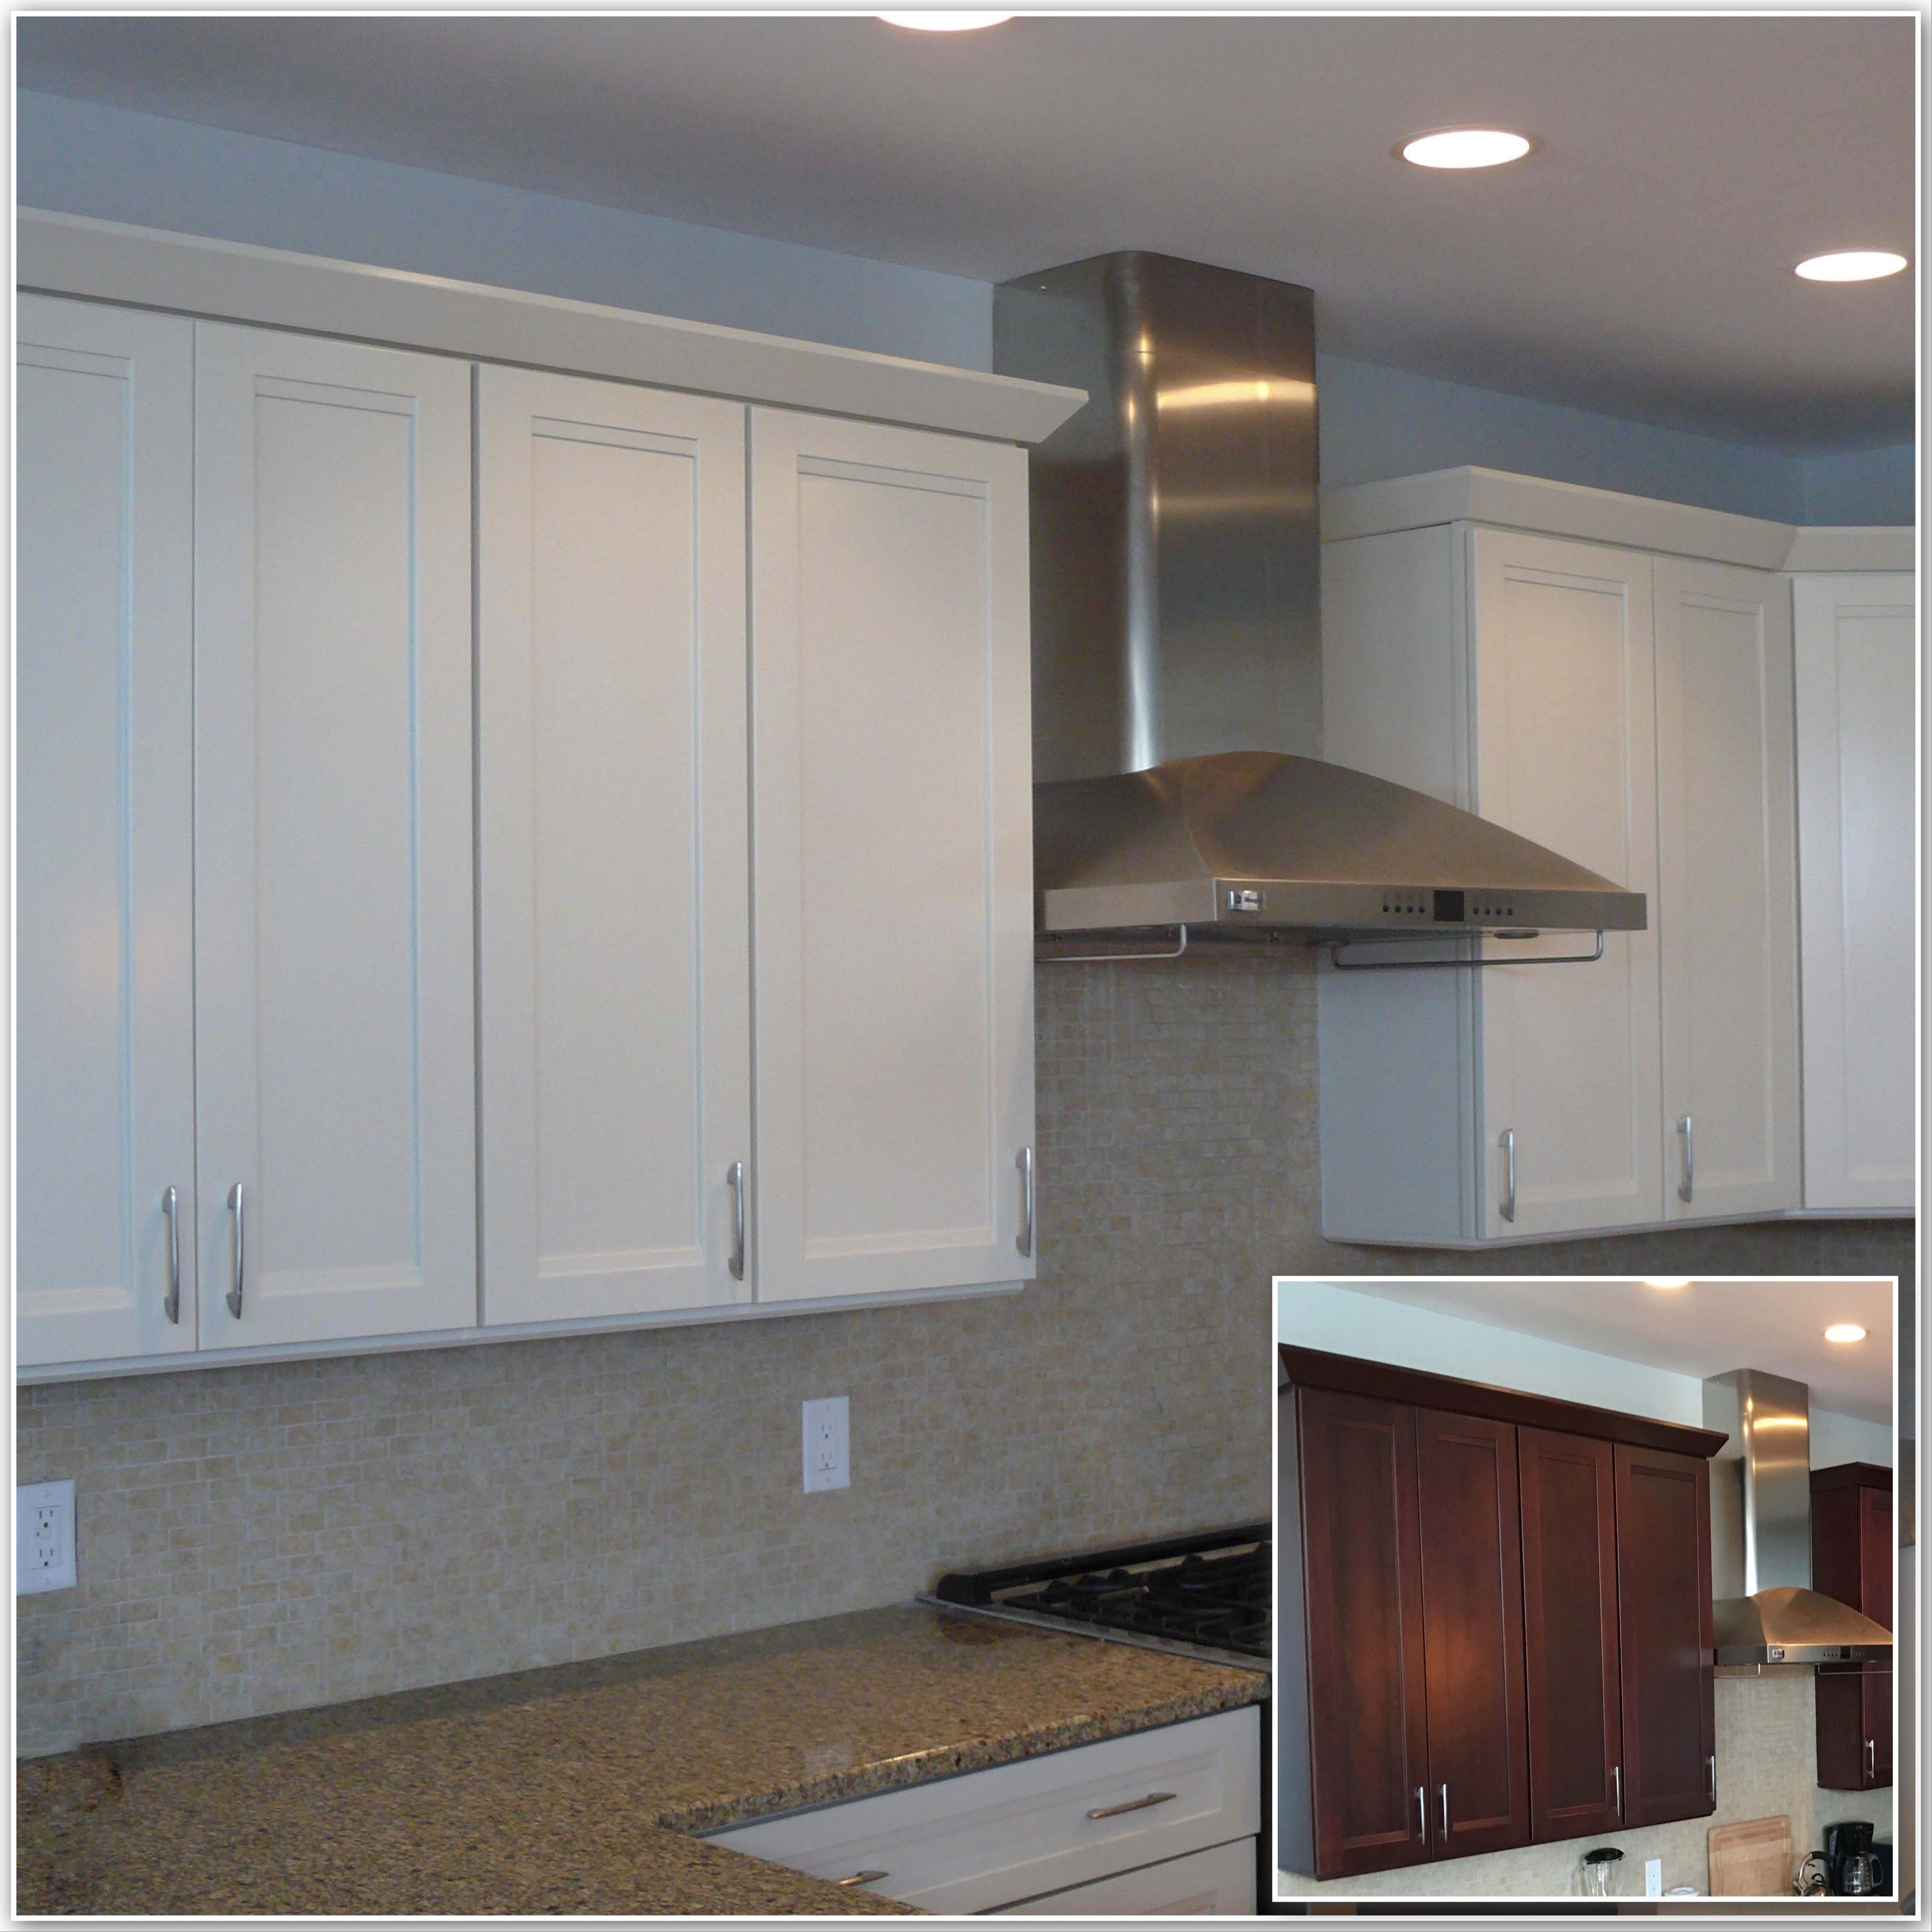 Home | Refinishing cabinets, Quality cabinets, Kitchen ...